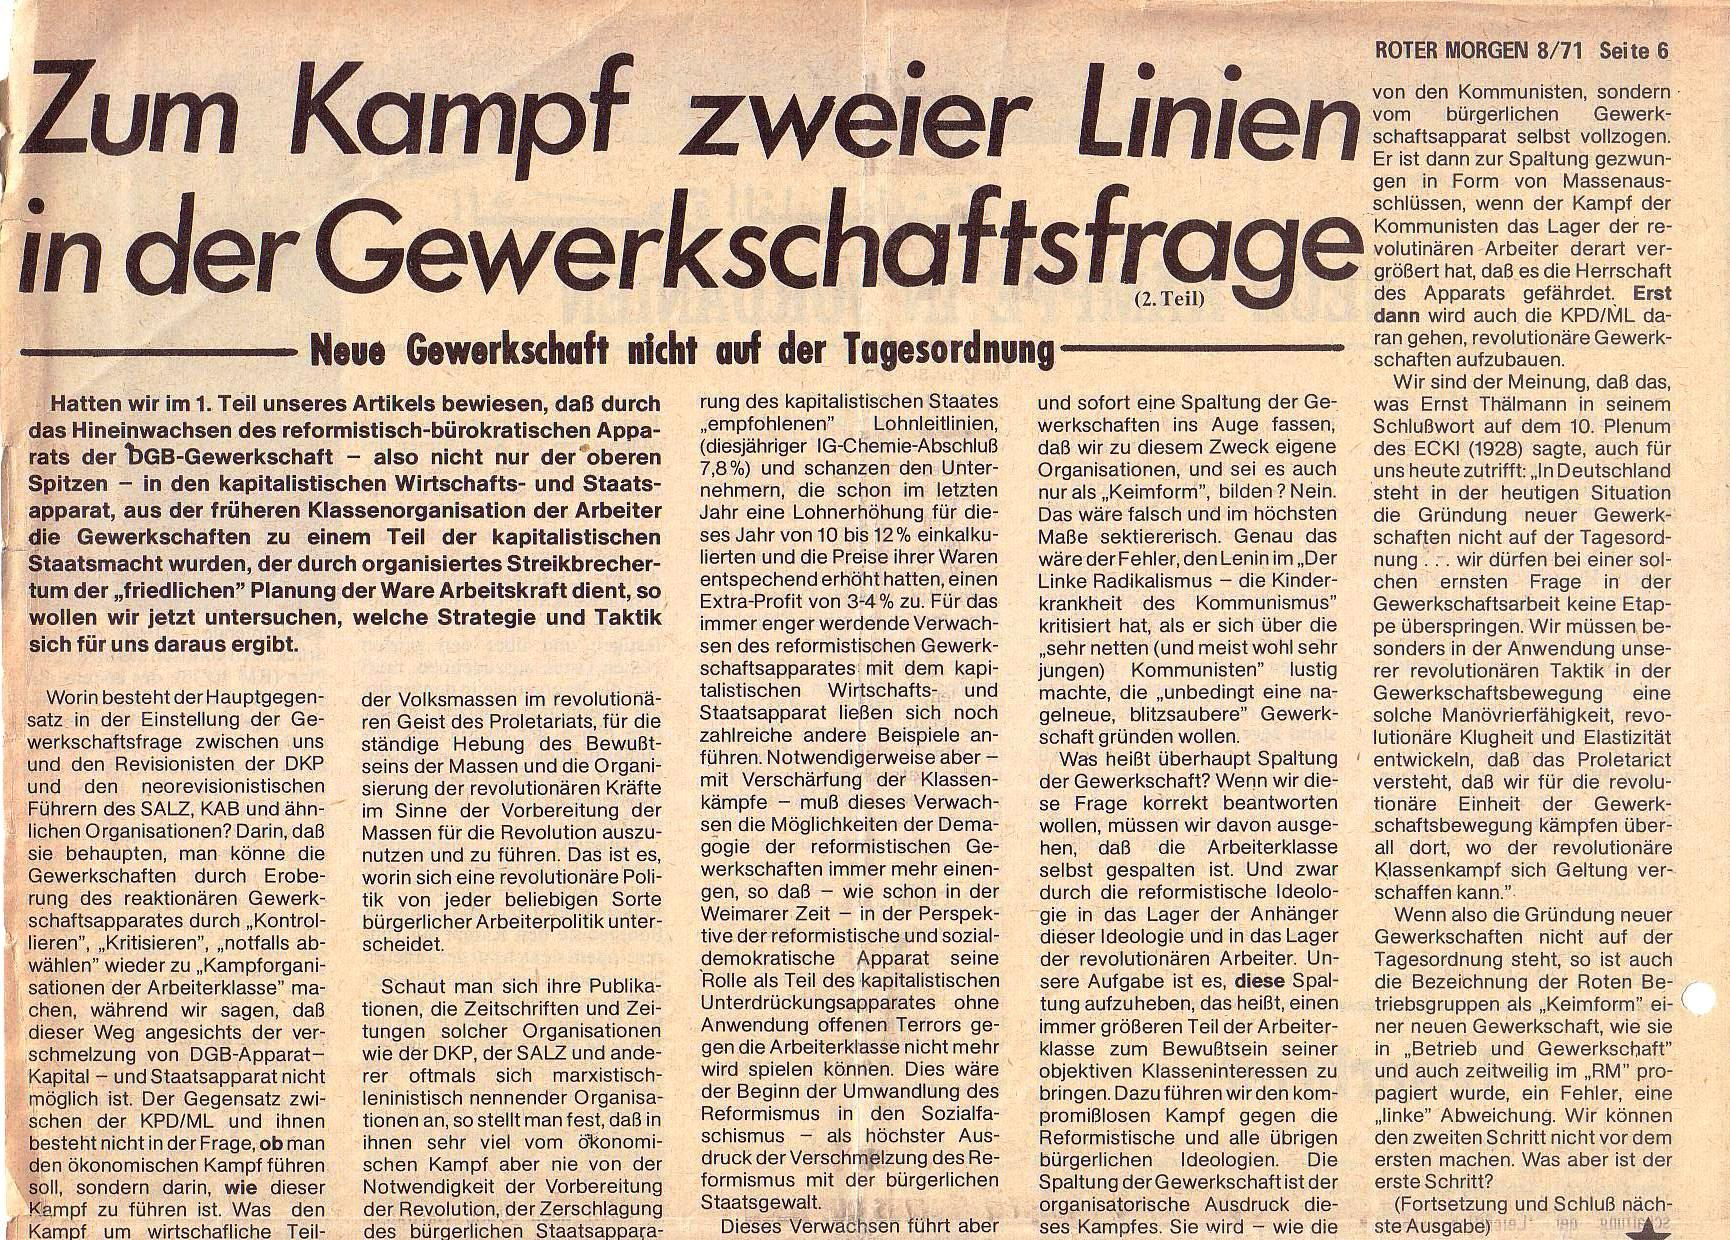 Roter Morgen, 5. Jg., August 1971, Nr. 8, Seite 6a